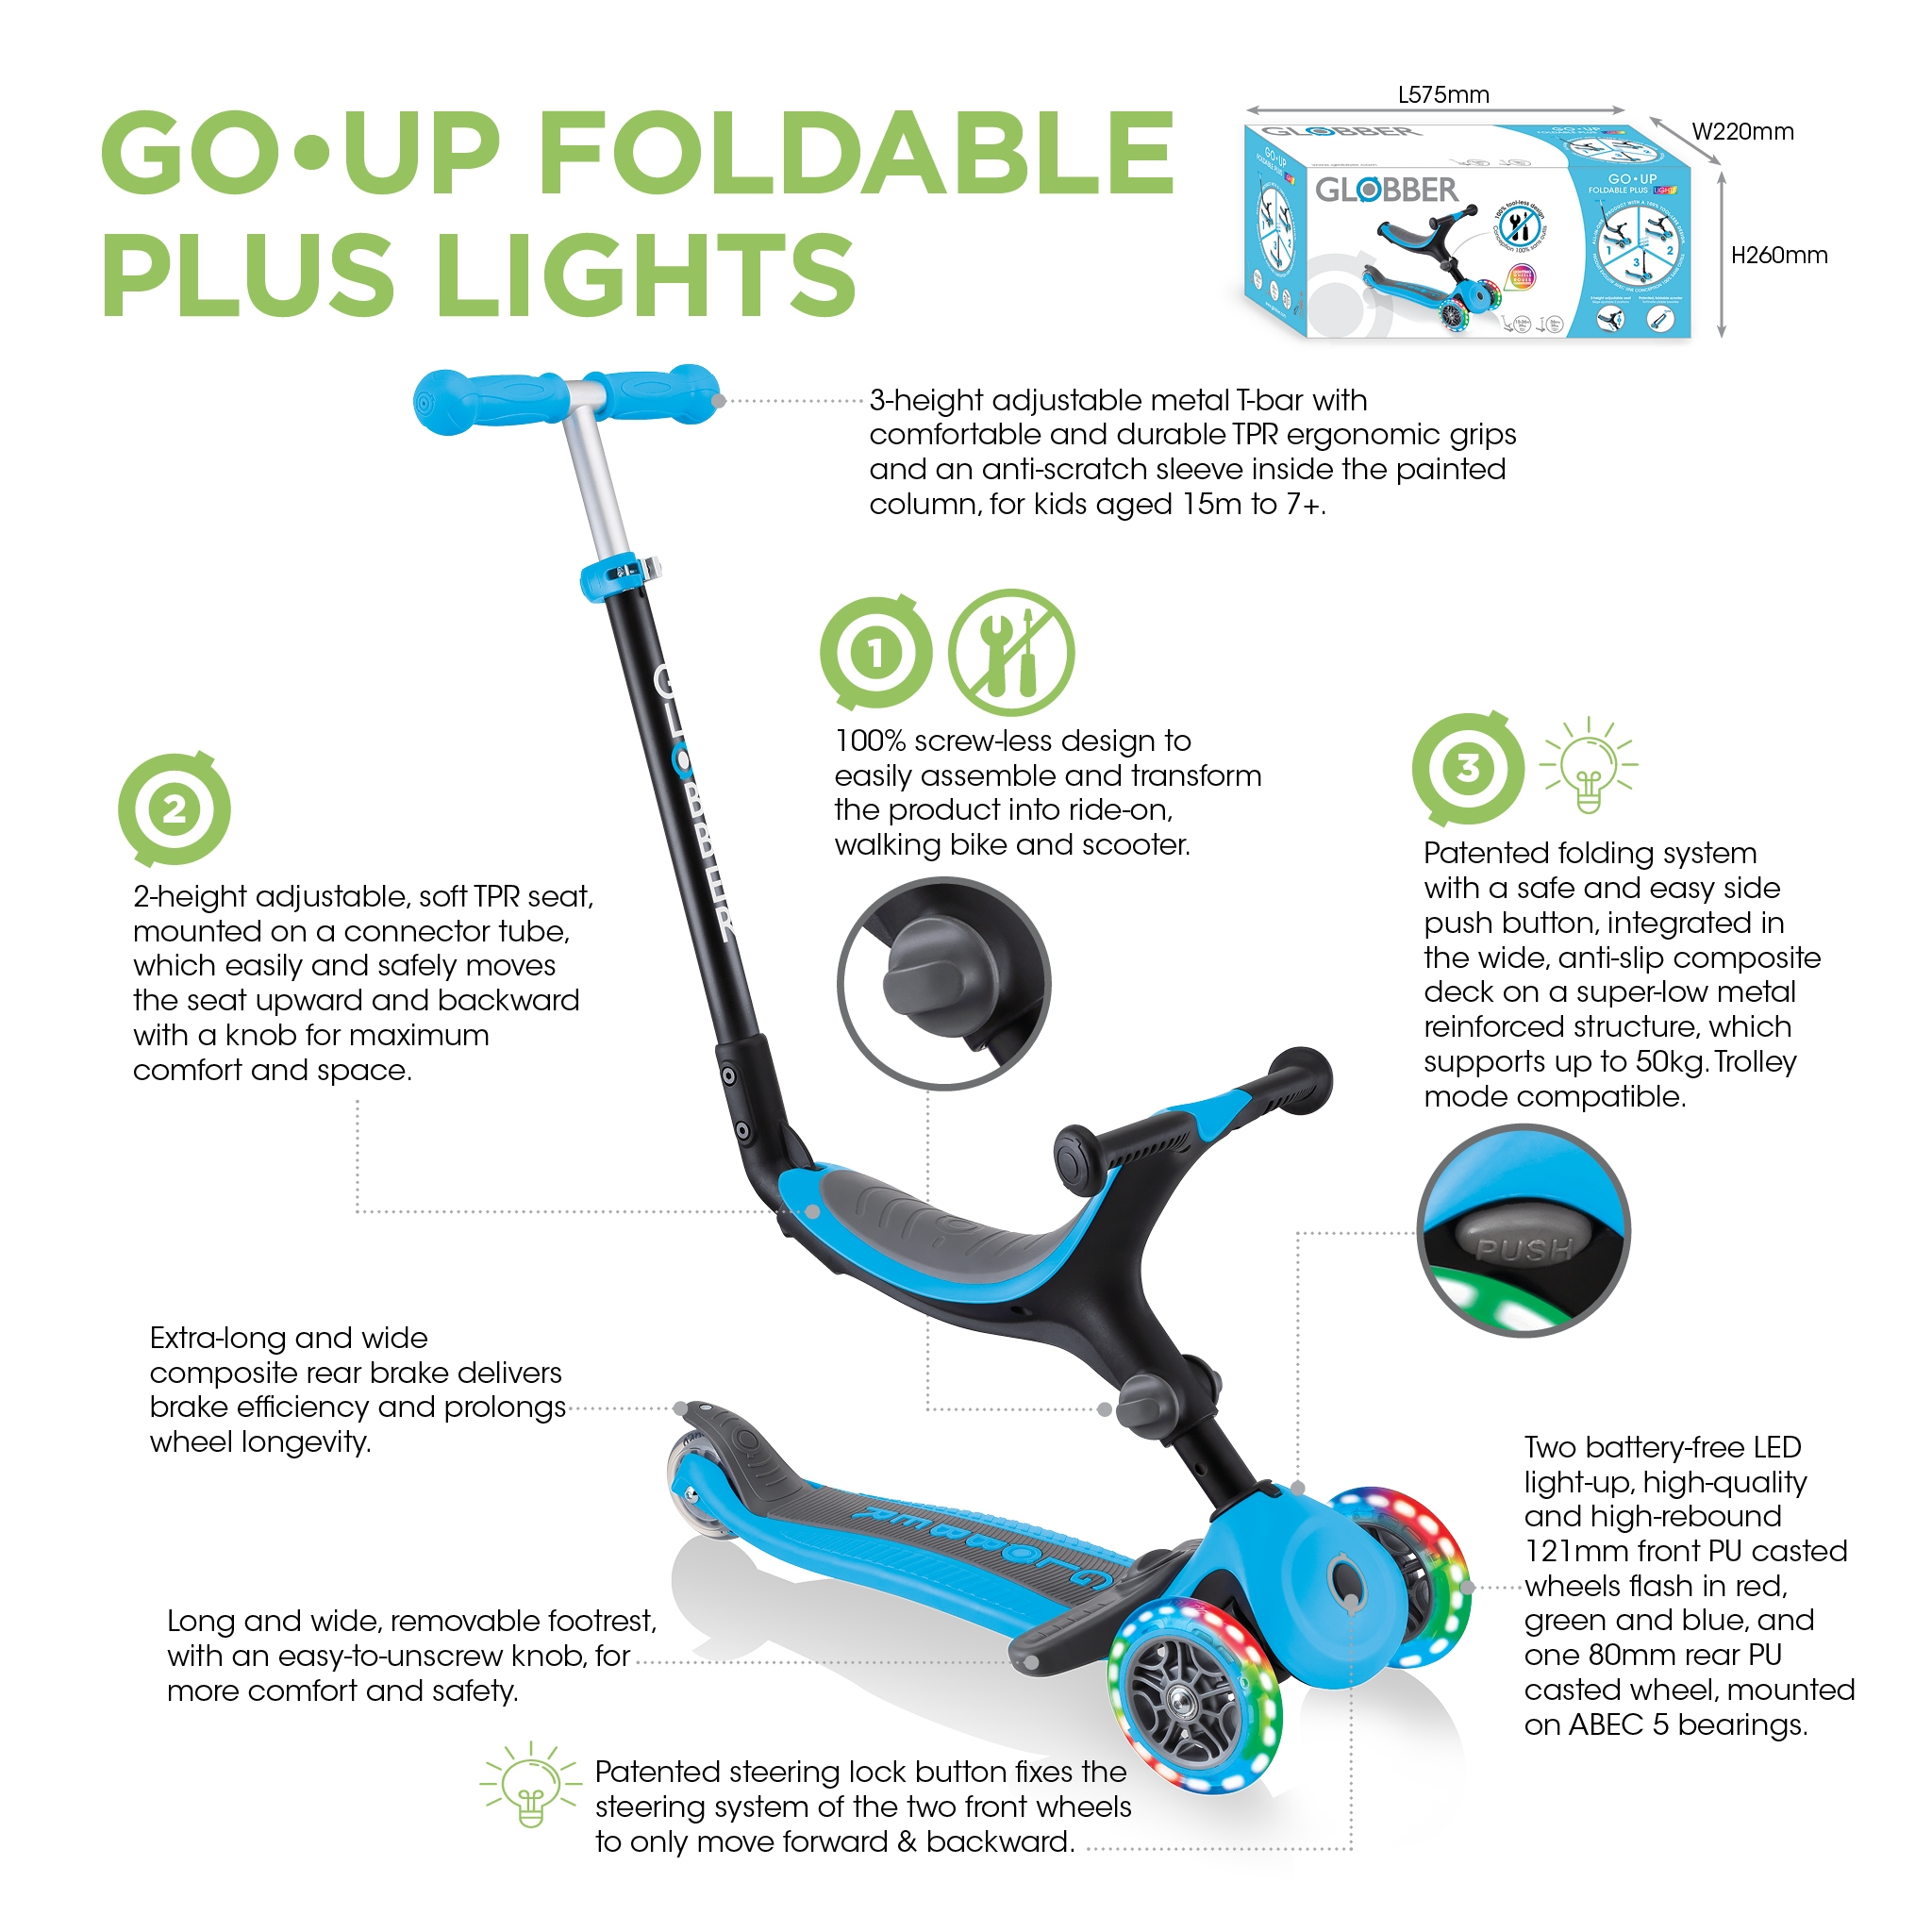 Globber-GO-UP-FOLDABLE-PLUS-LIGHTS-scooter-with-seat-for-toddlers 3